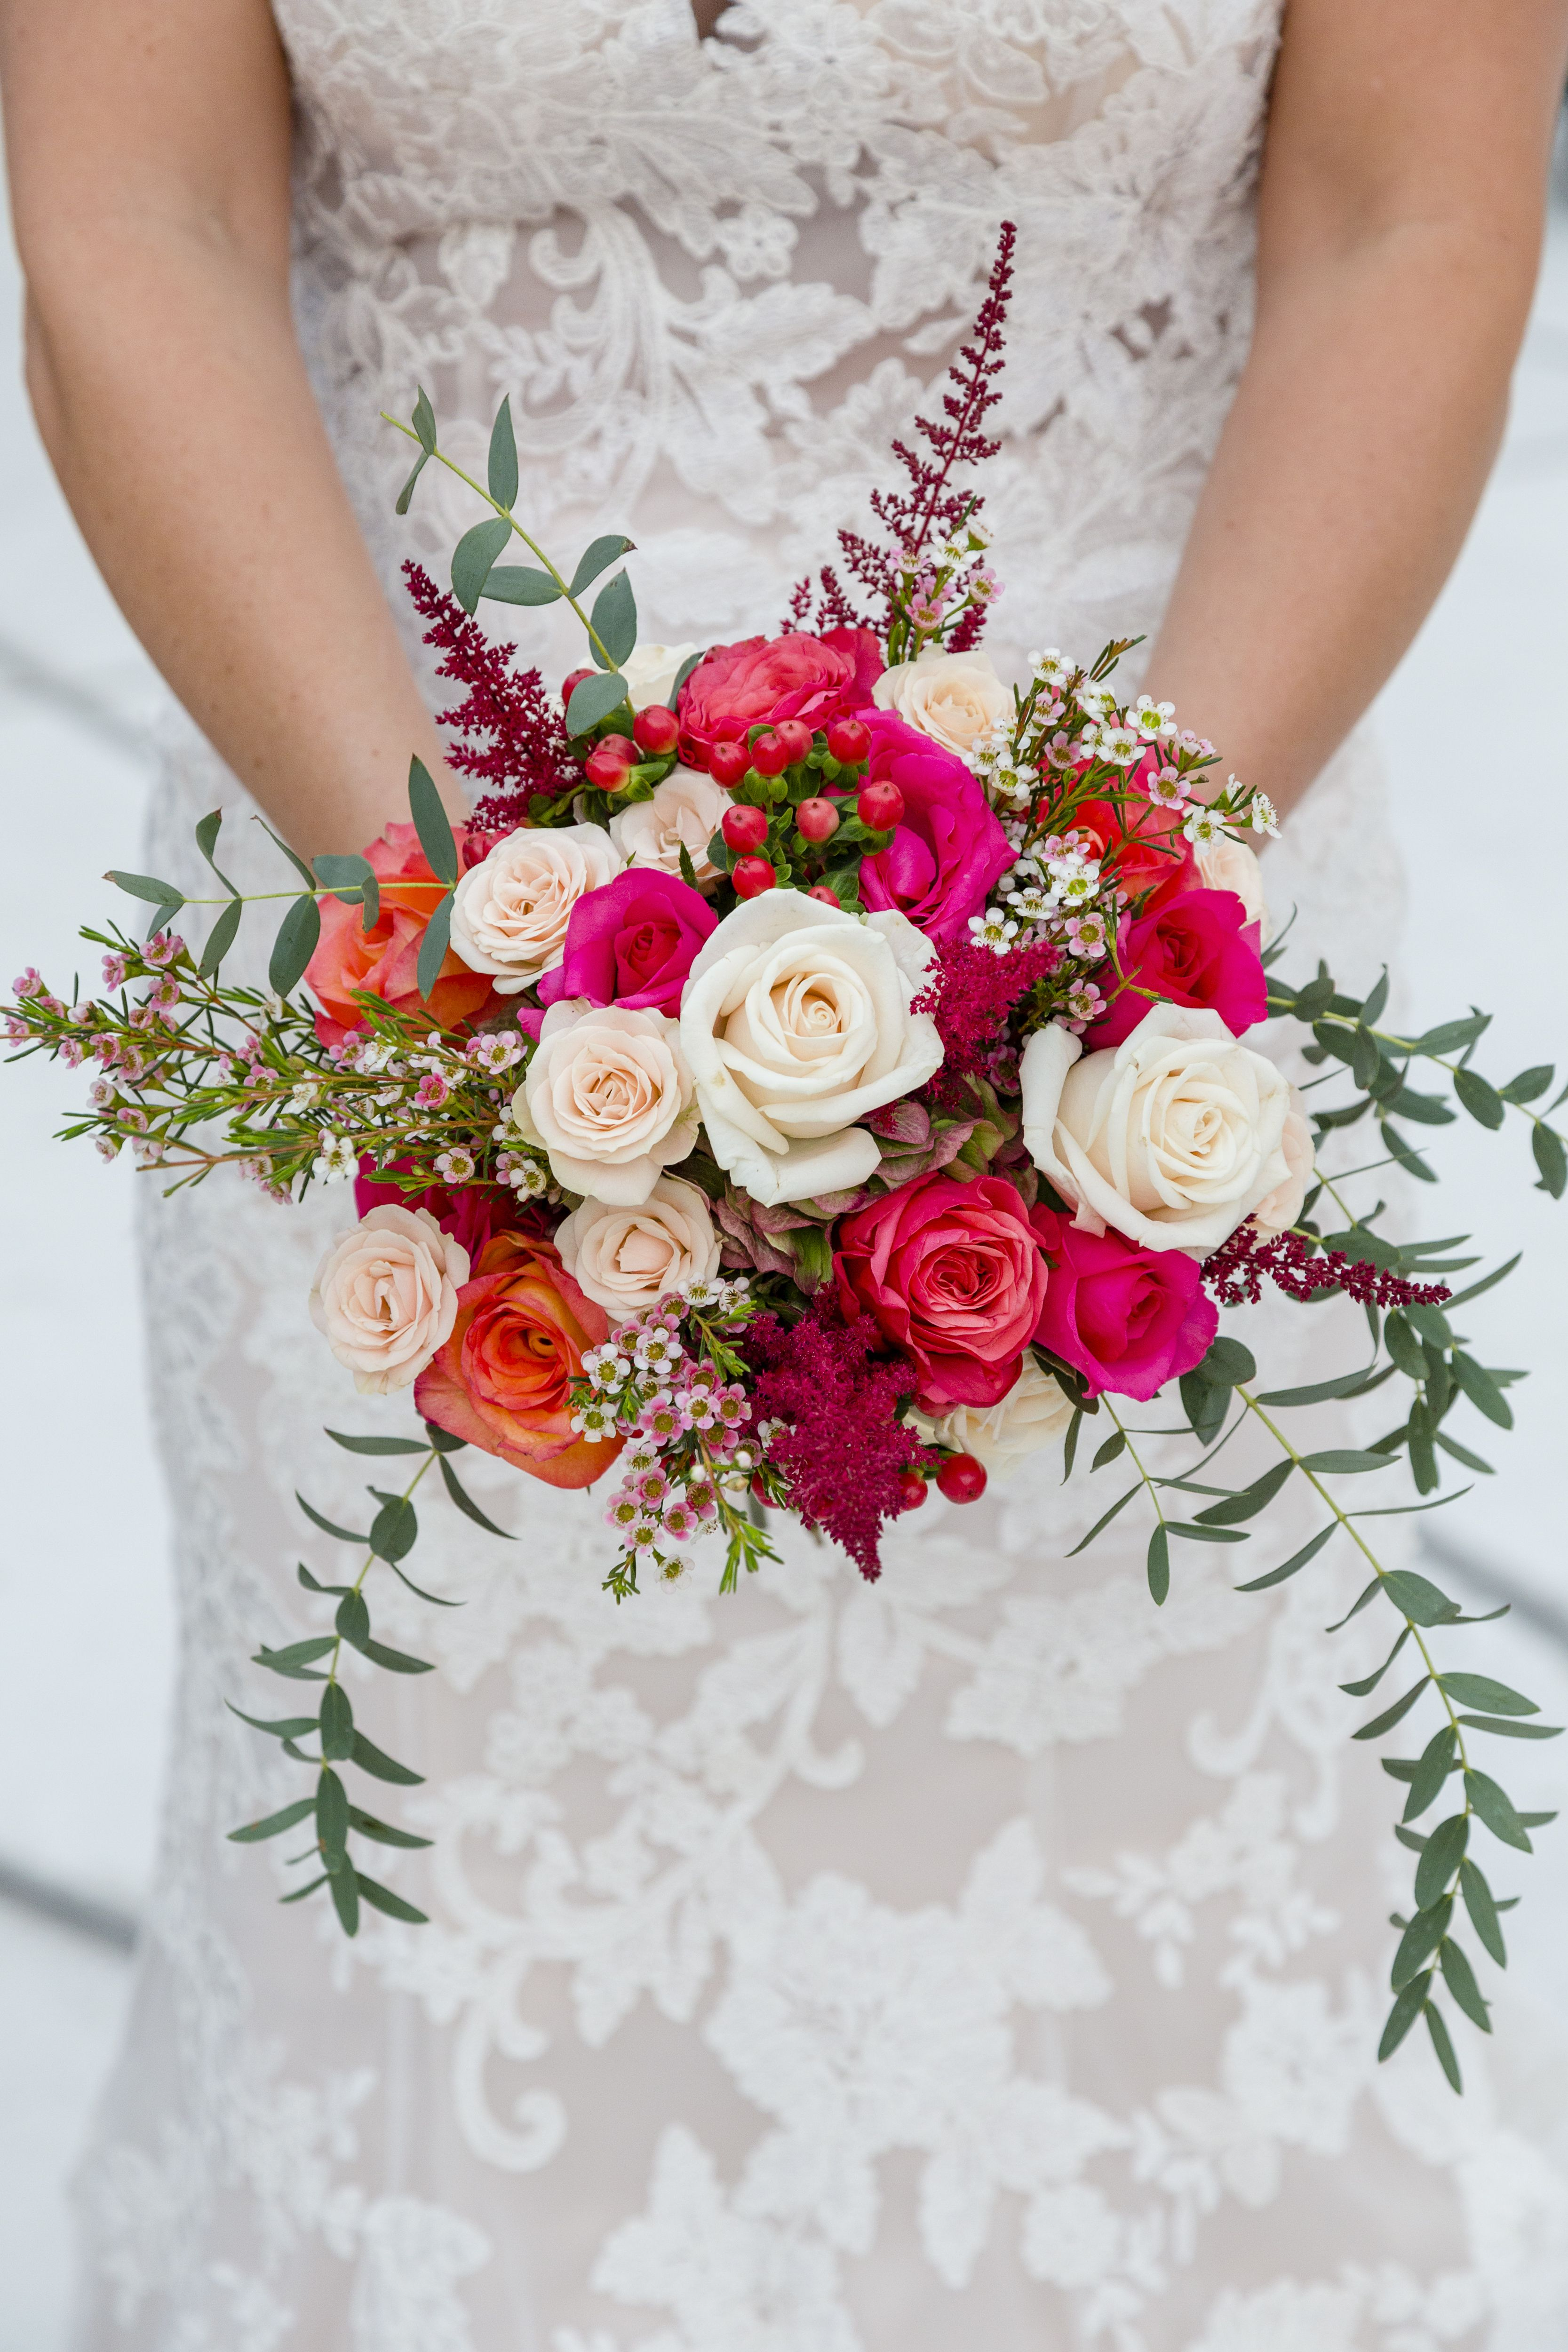 Caitlin Carried This Incredible Hot Pink Bouquet When She Eloped